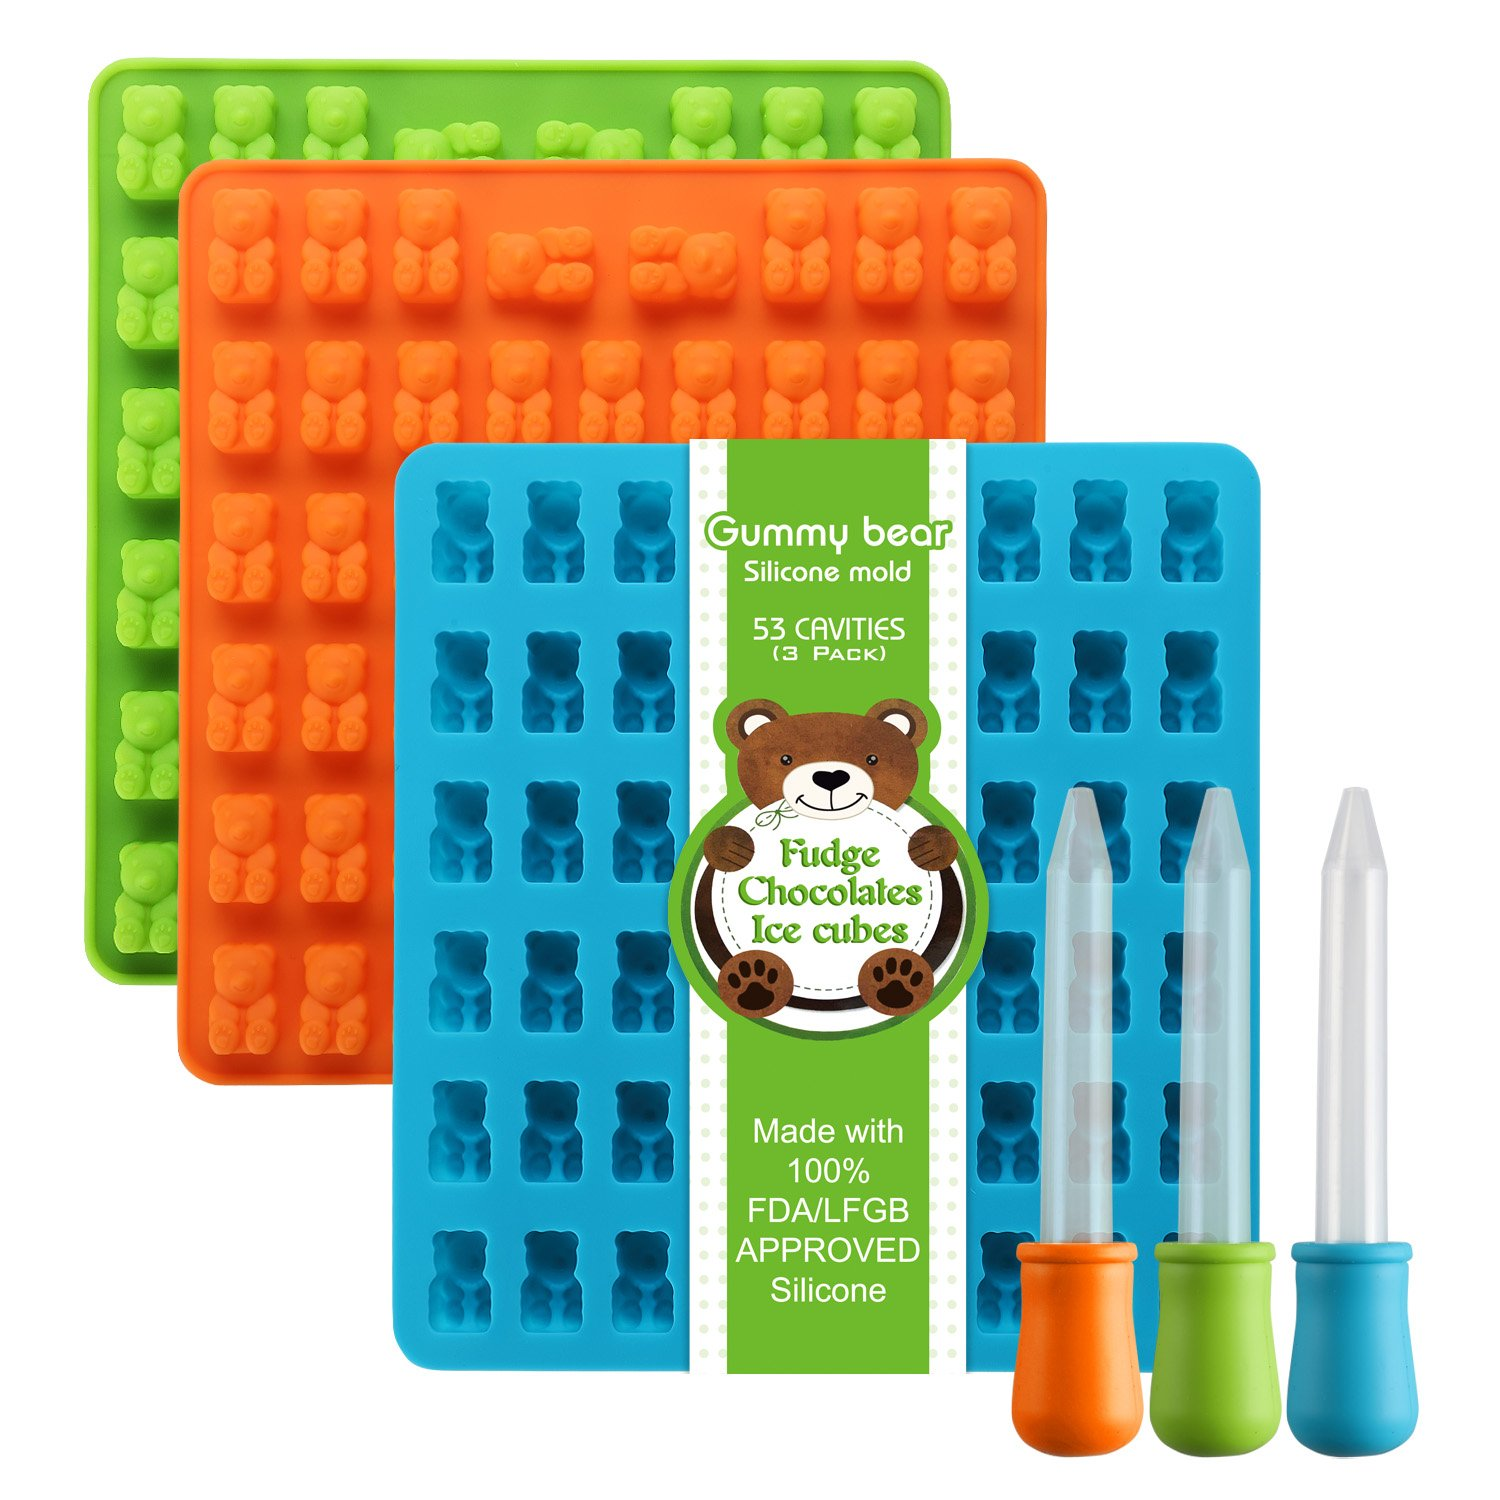 Newest Generation - 3 Pack Silicone Gummy Bear Molds 53 Cavities, 3 Bonus Droppers Perfect for Mints Chocolates Fudge Ice Cubes, BPA Free FDA Approved ( Blue, Green, Orange) by Lizber